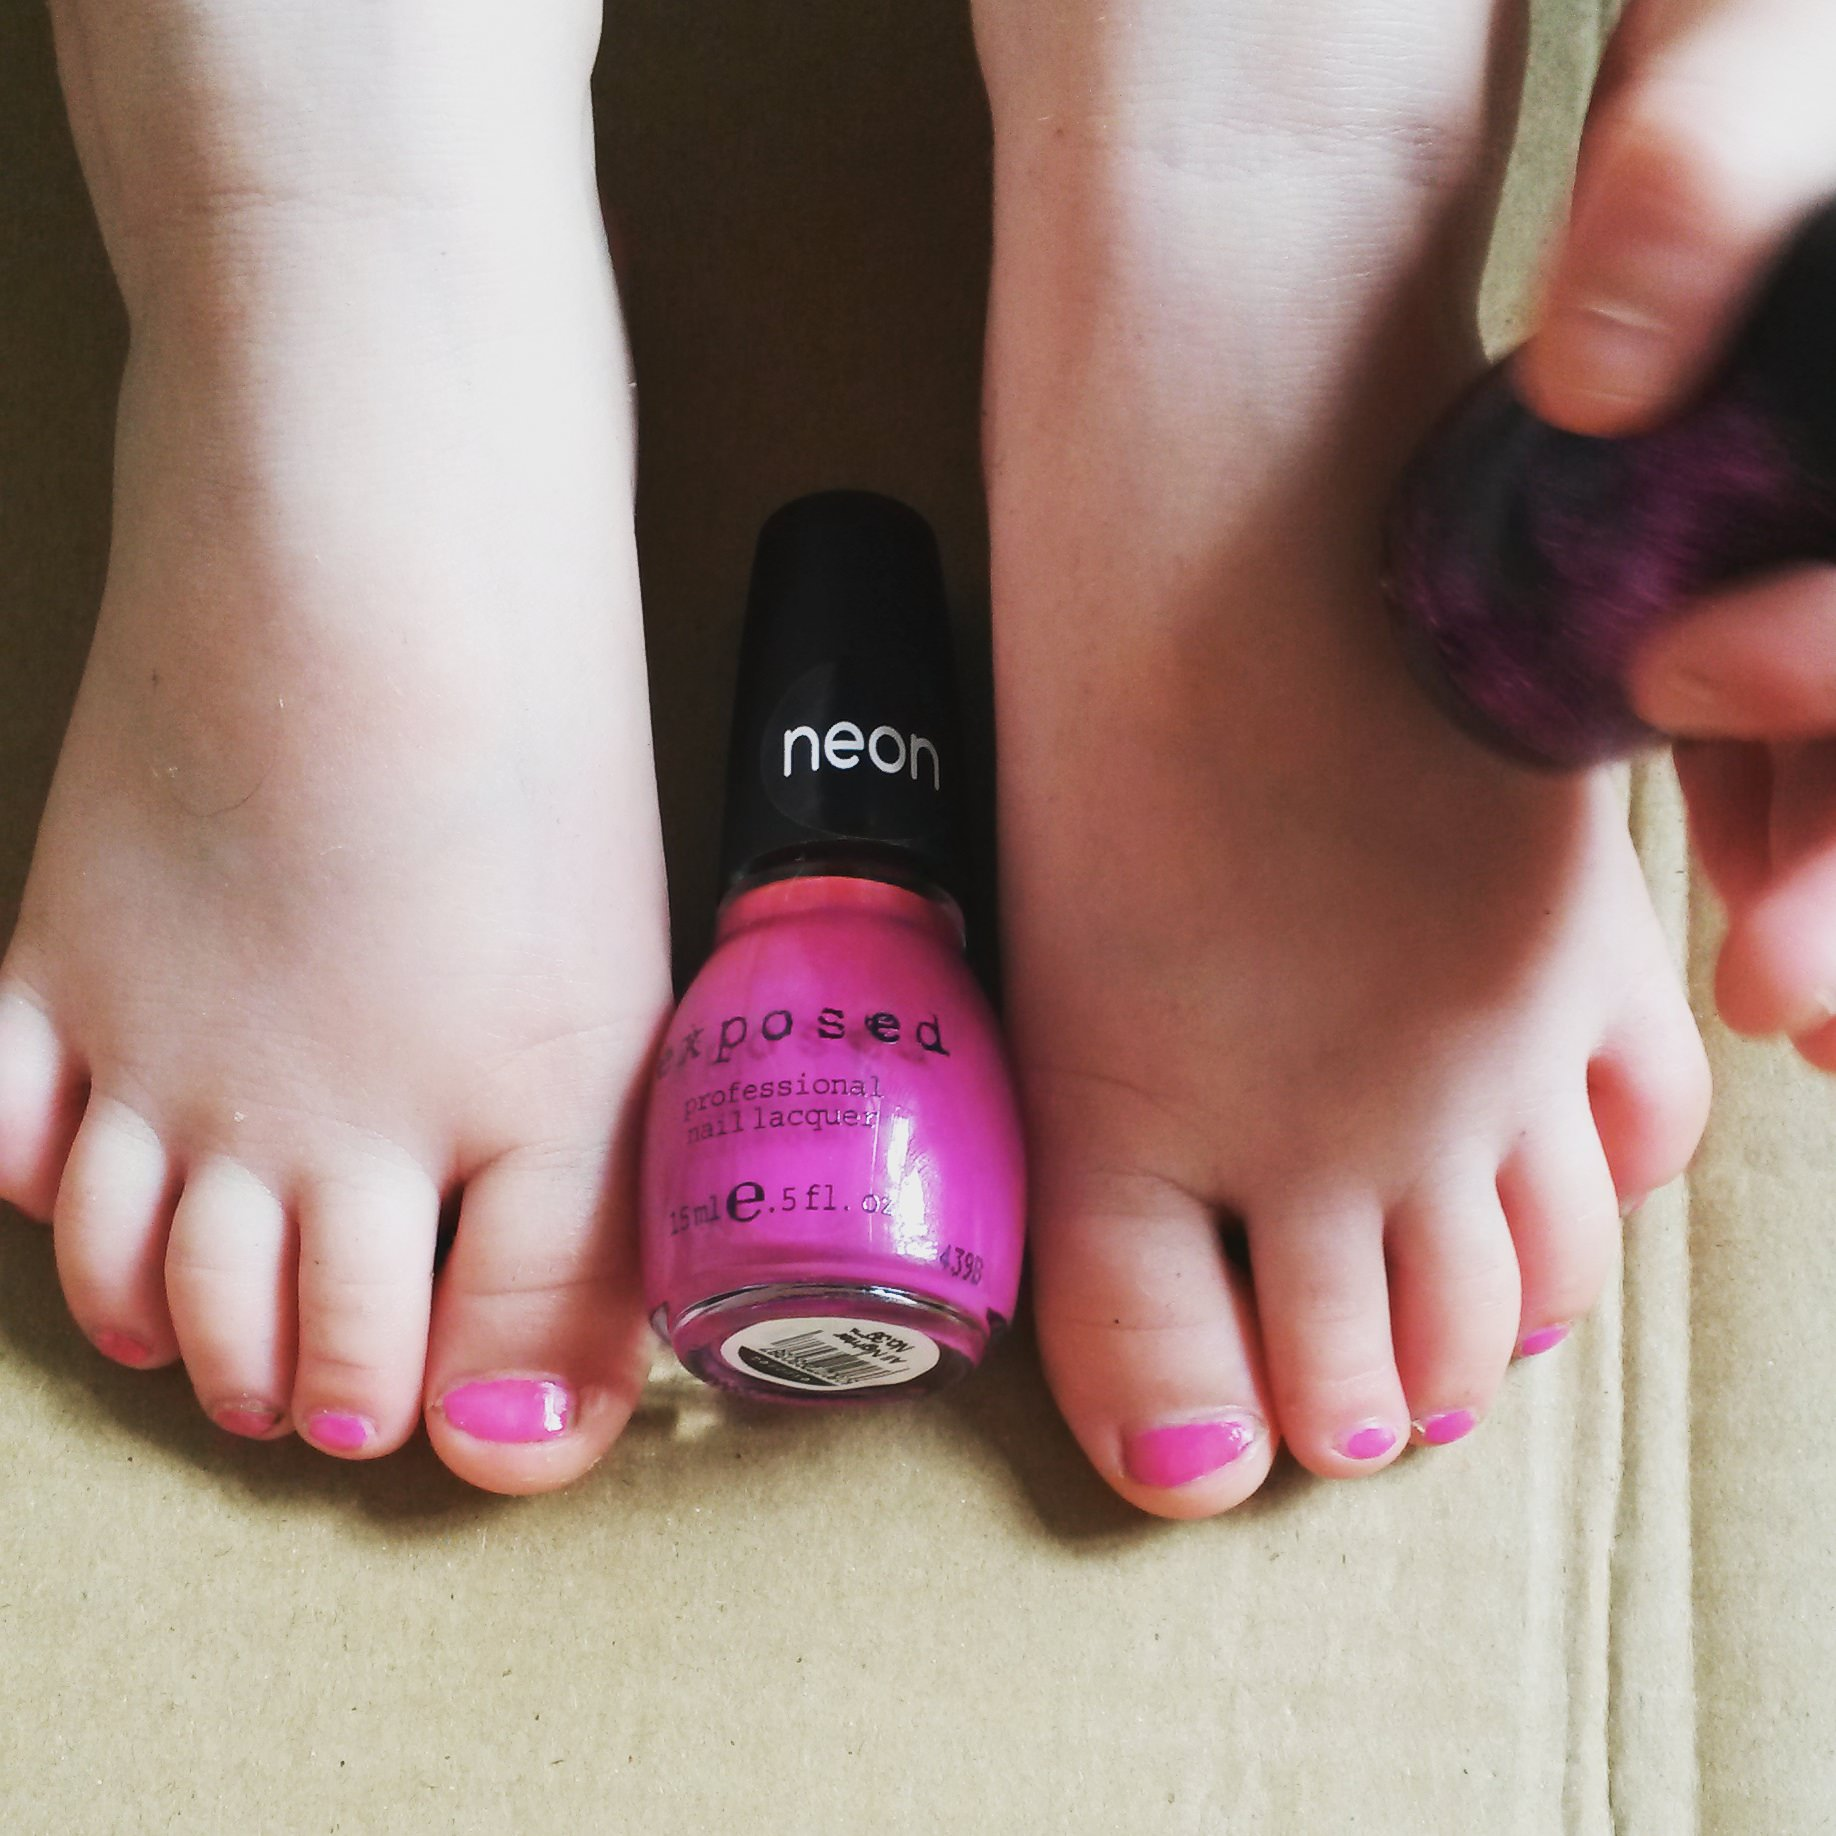 """Neon exposed 'all nighter' from #nrwsummer blogger event. """"I need glitter on top"""" Jessica age four. #exposedpolish"""